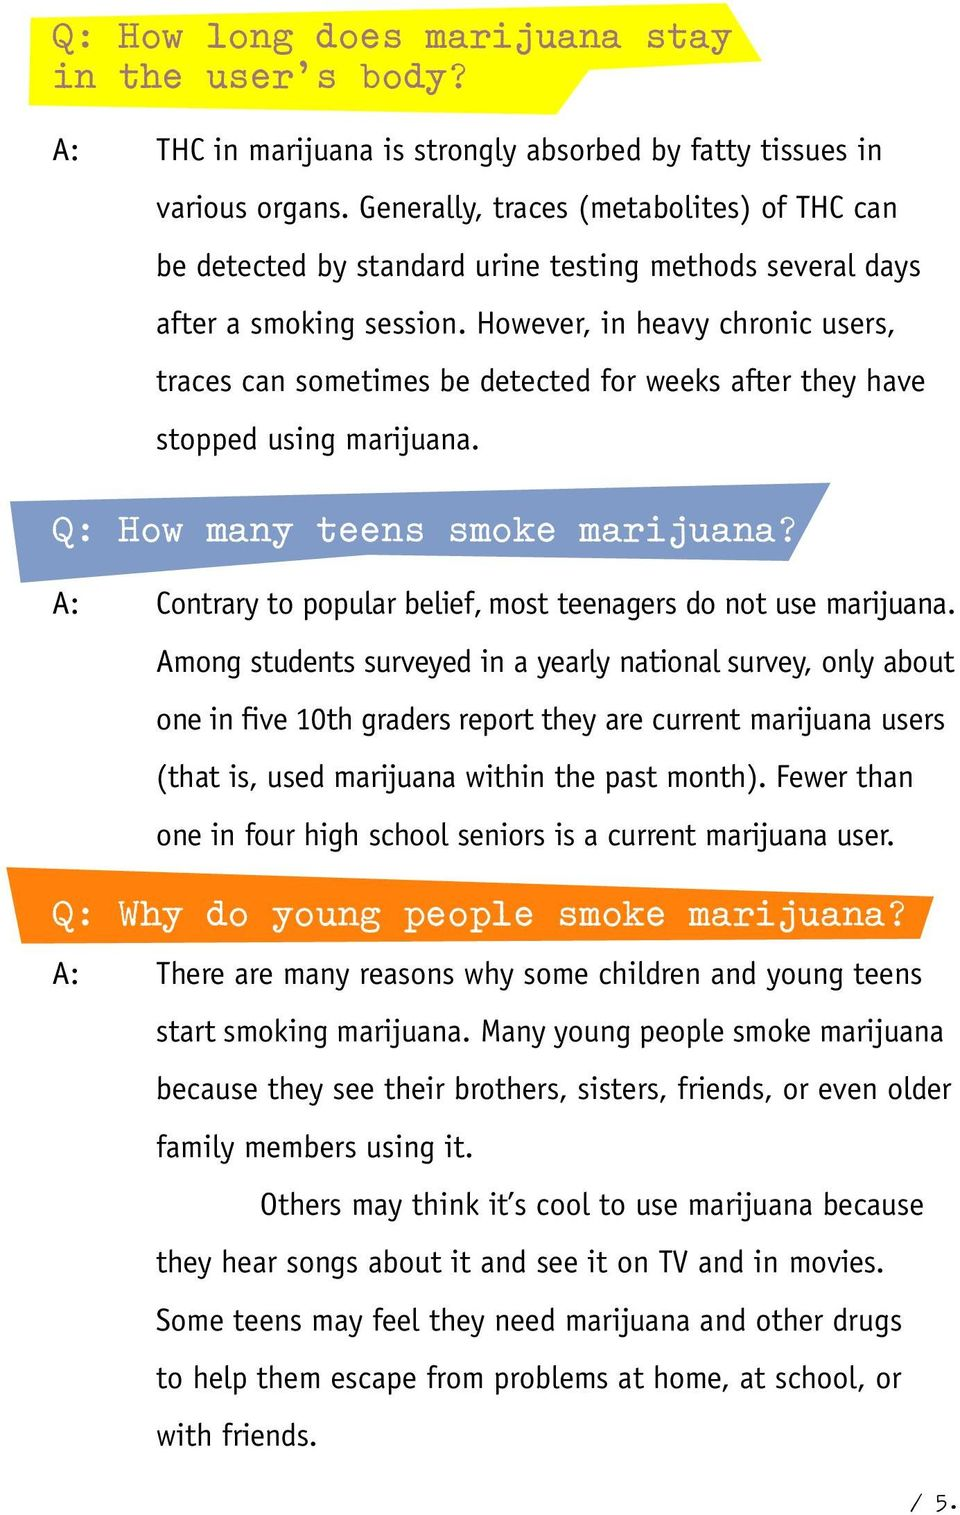 However, in heavy chronic users, traces can sometimes be detected for weeks after they have stopped using marijuana. Q: How many teens smoke marijuana?